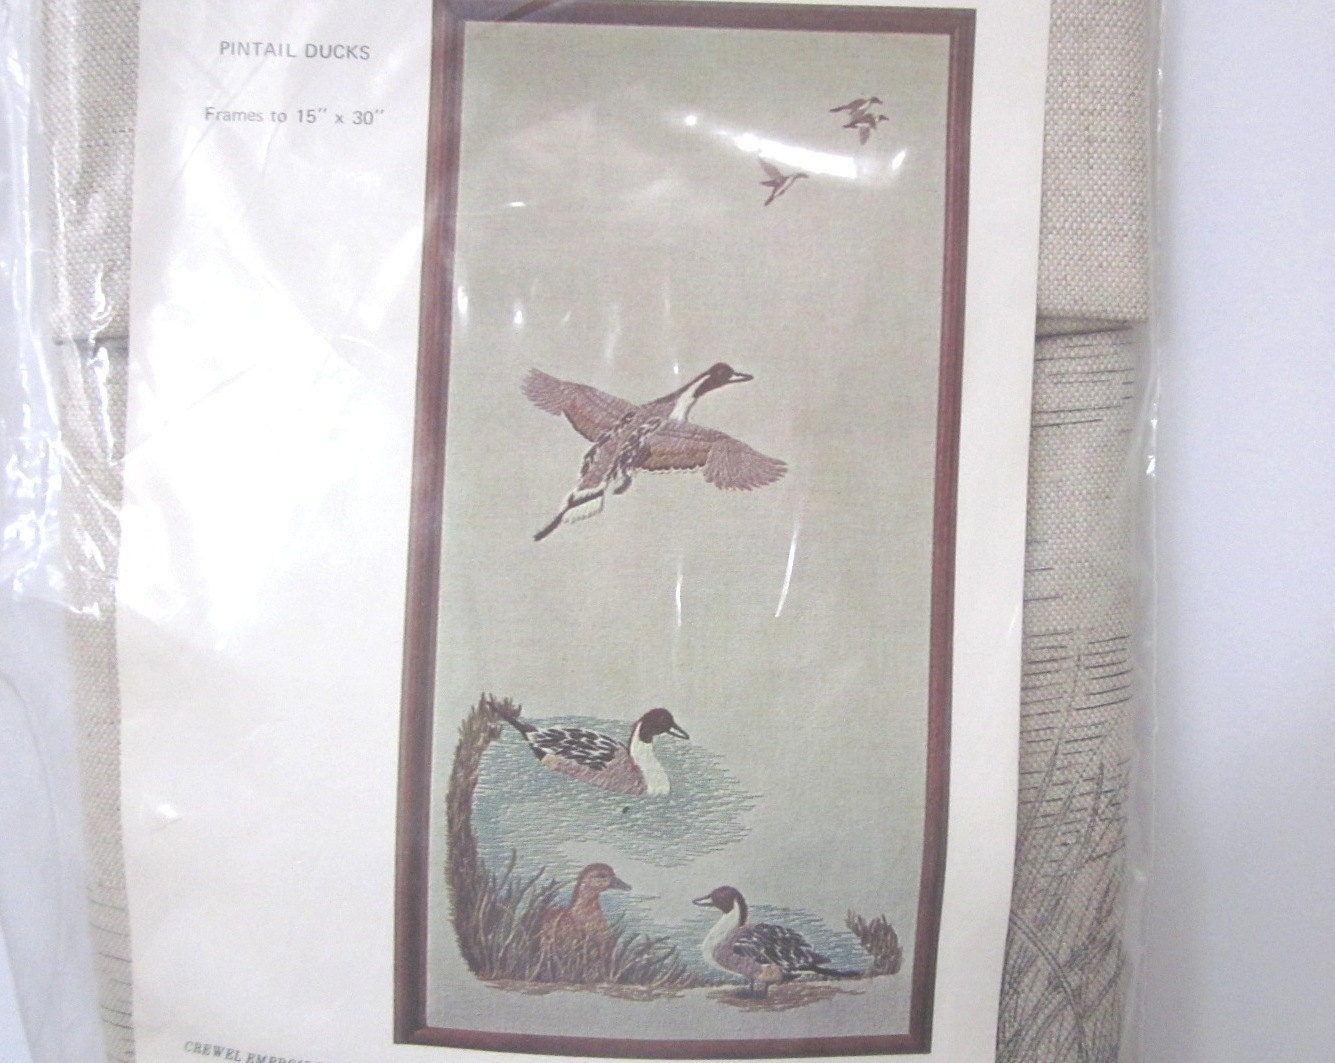 Wonderful pintail ducks crewel embroidery kit blanche